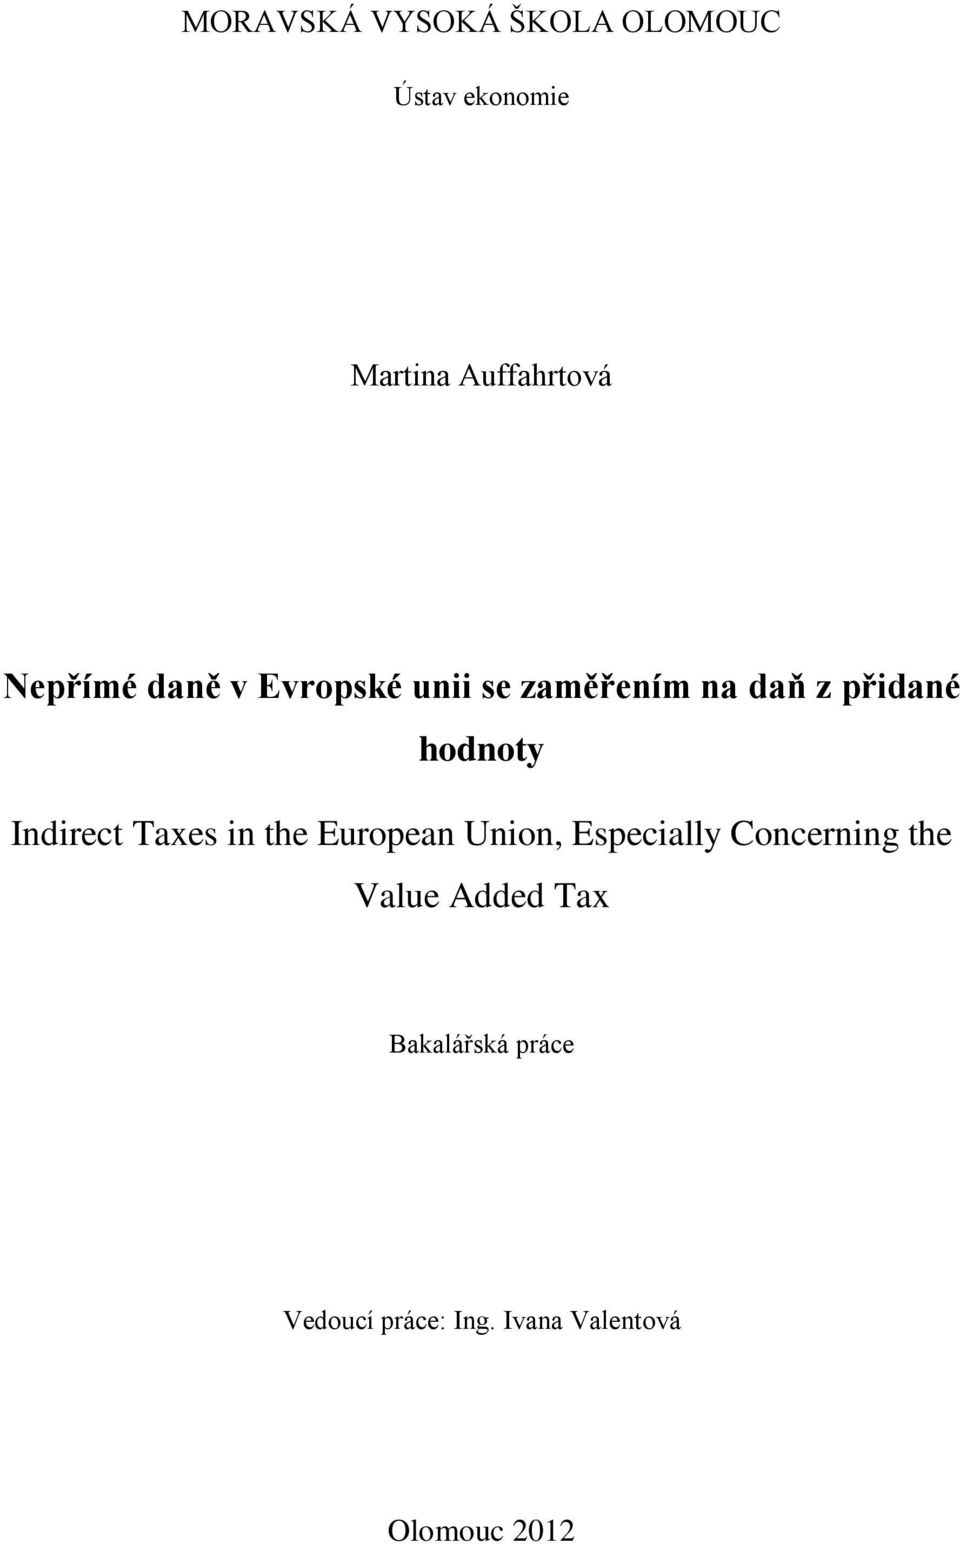 Indirect Taxes in the European Union, Especially Concerning the Value